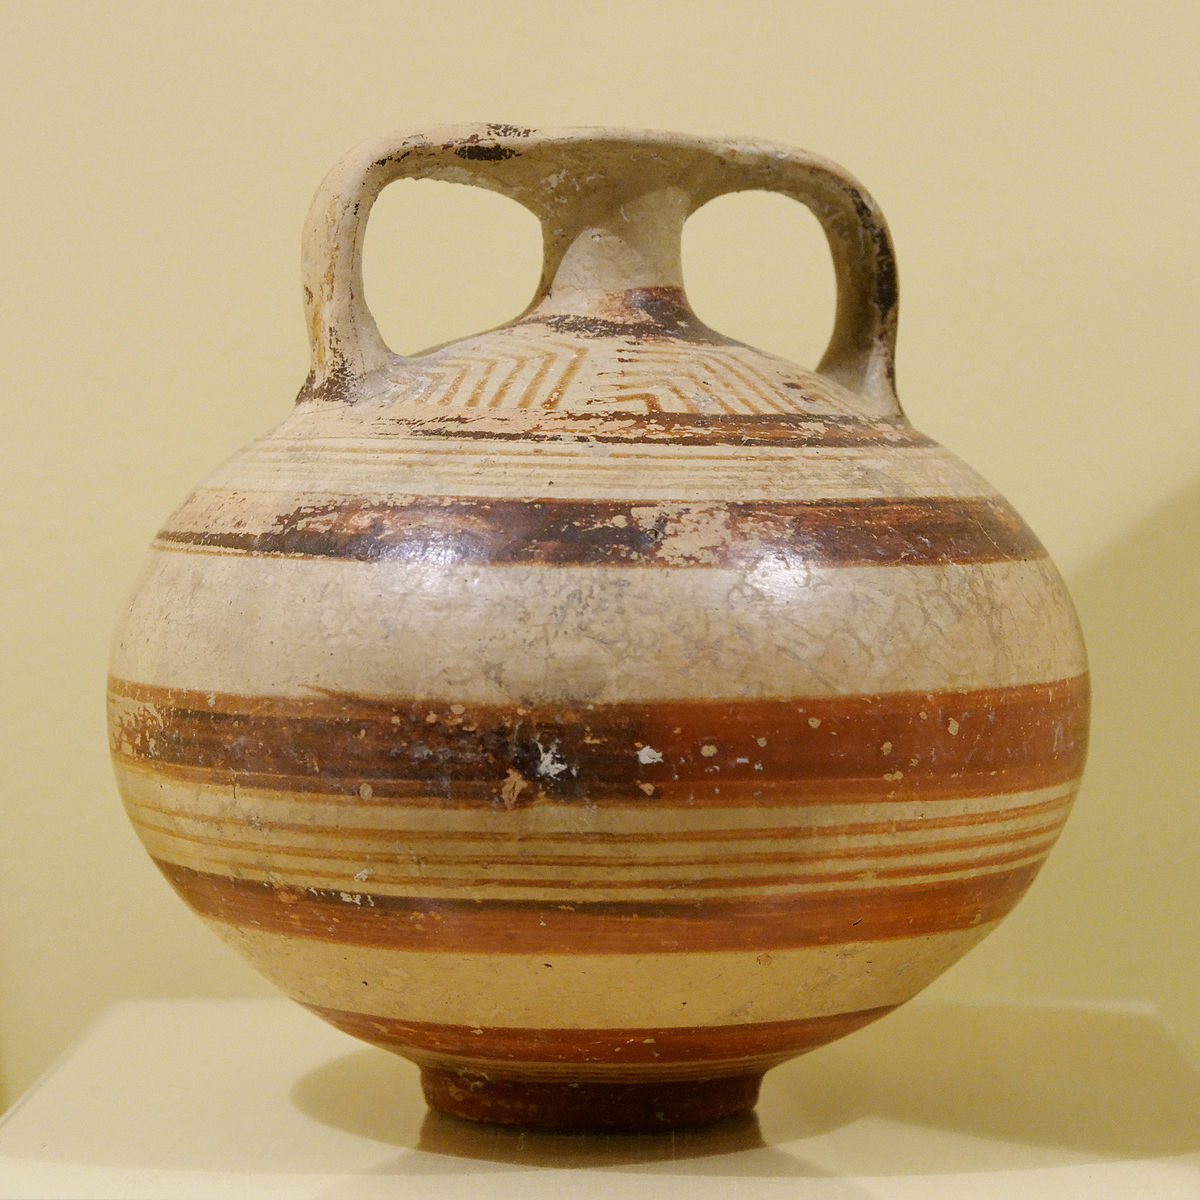 Mycenaean Pottery Wikipedia